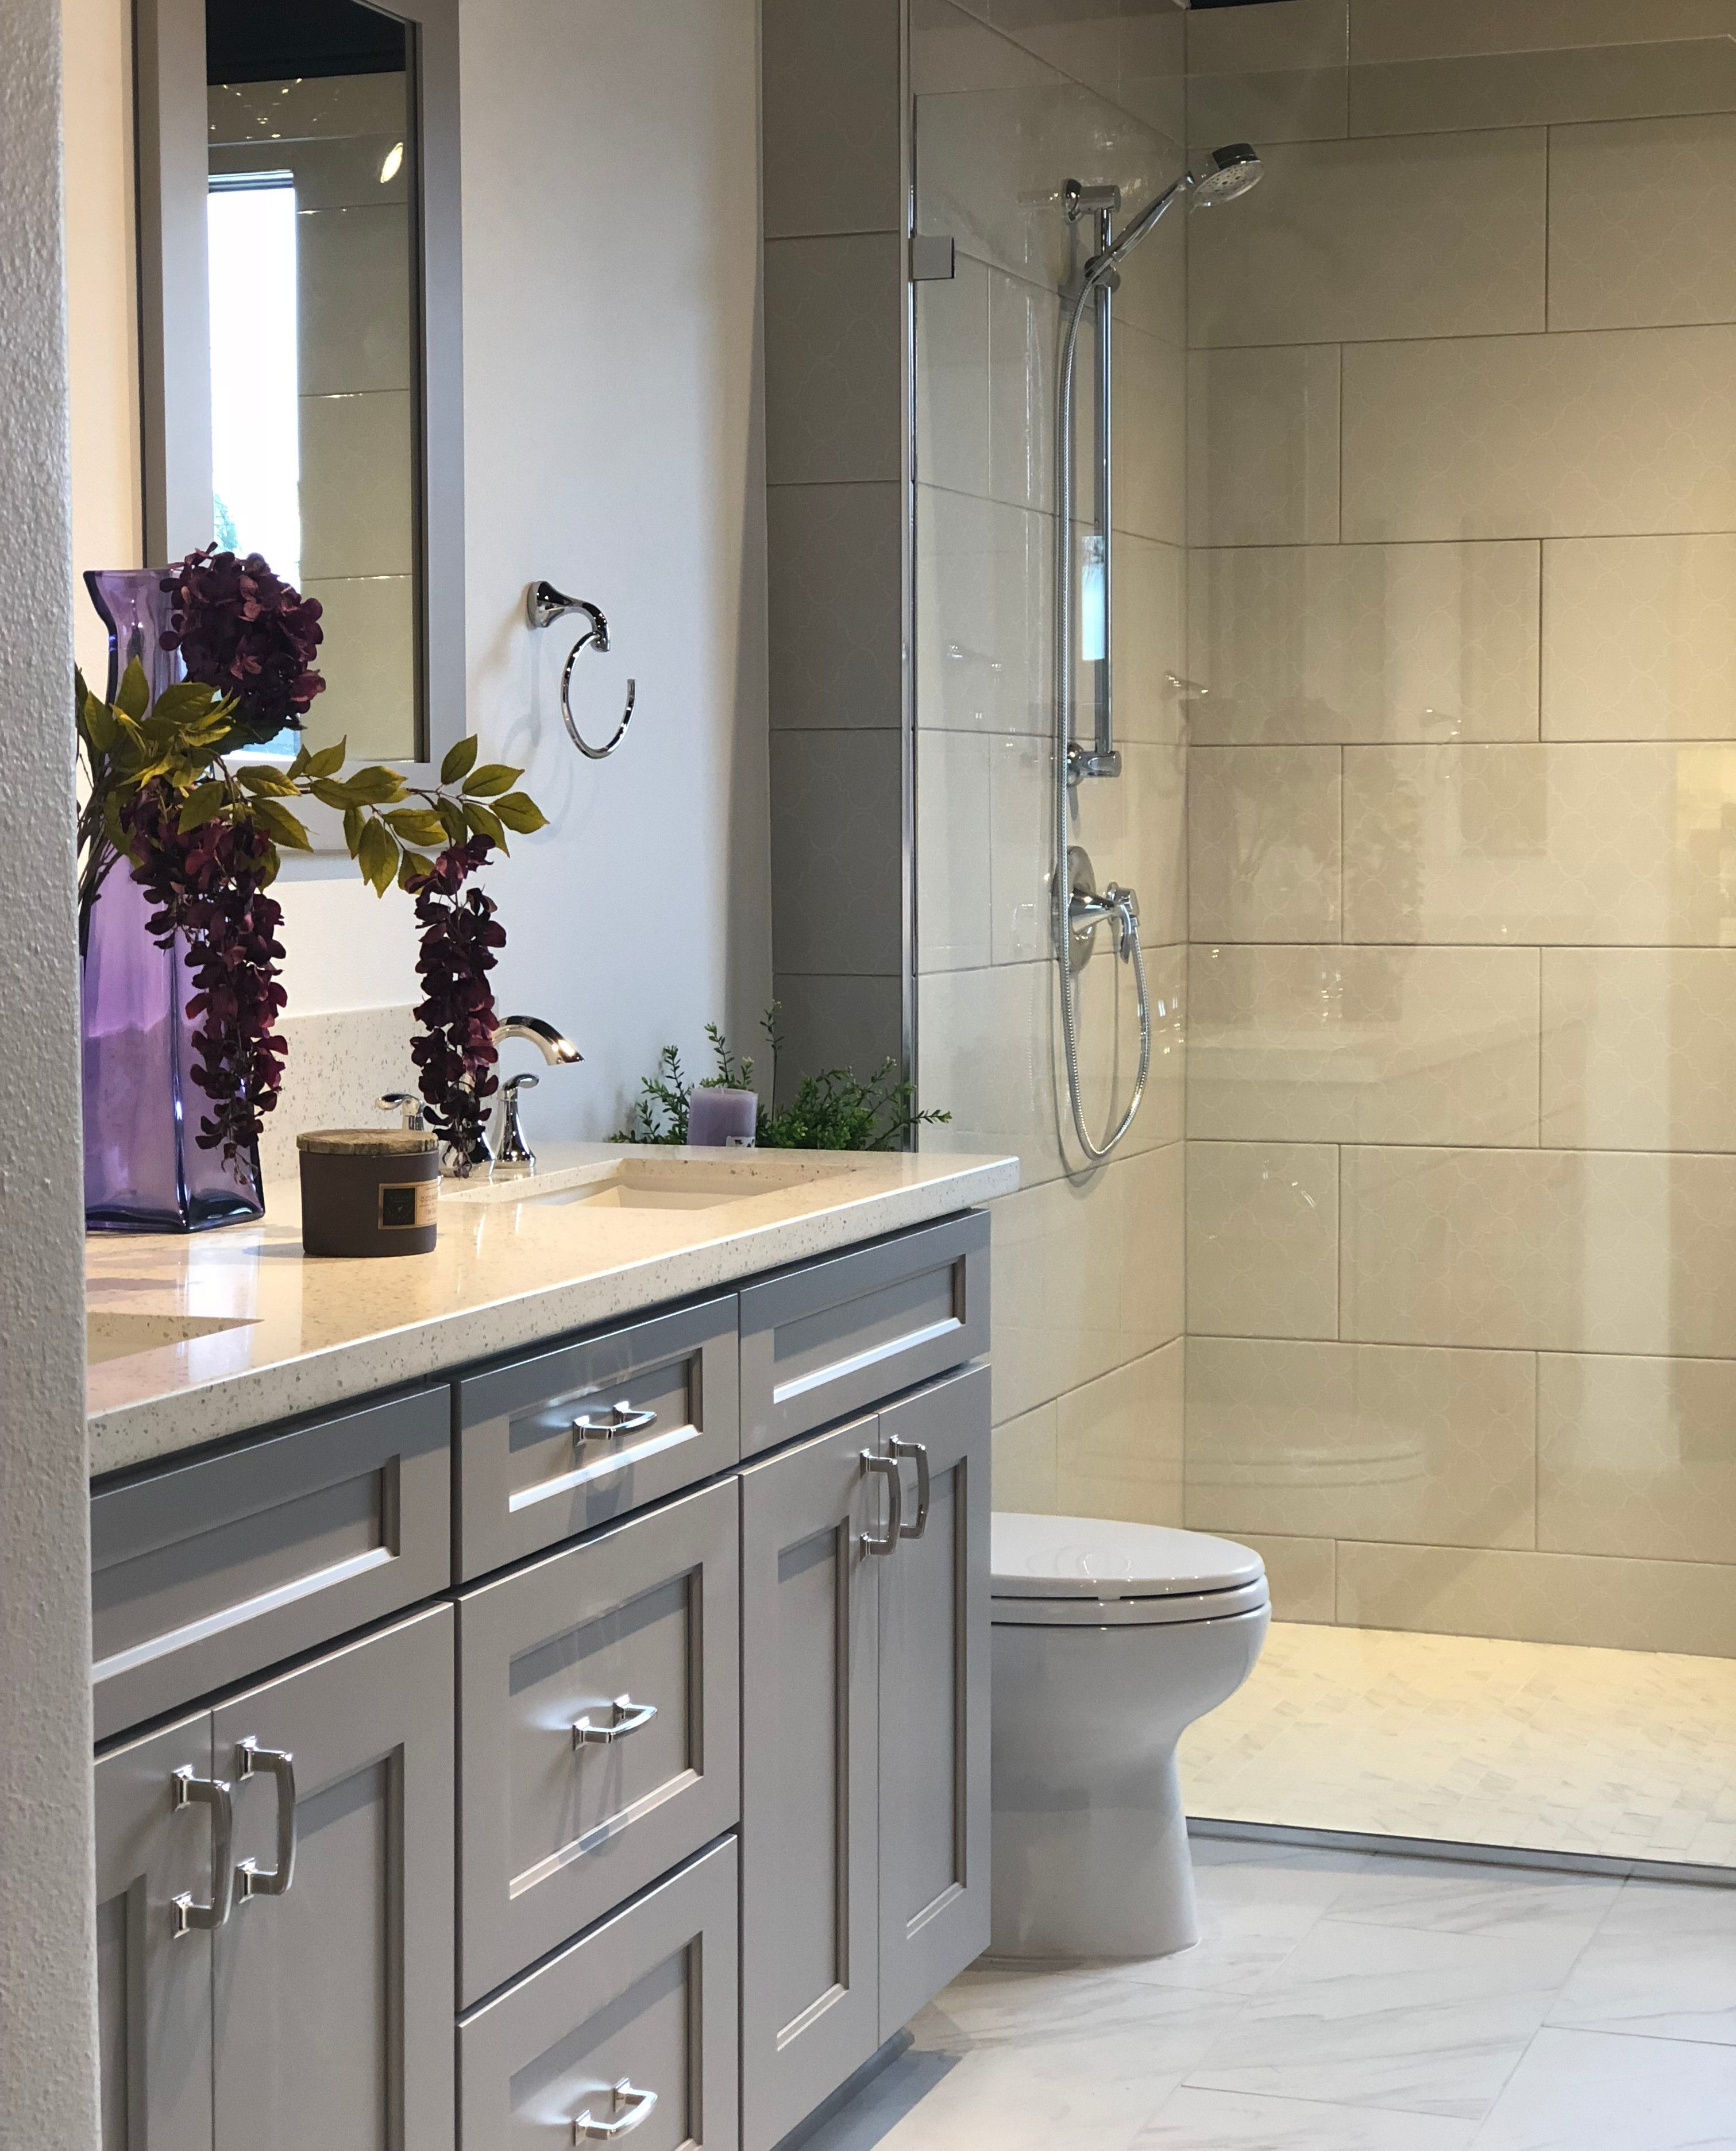 This Bathroom Shows A Wellborn Vanity With A Shaker Door Style